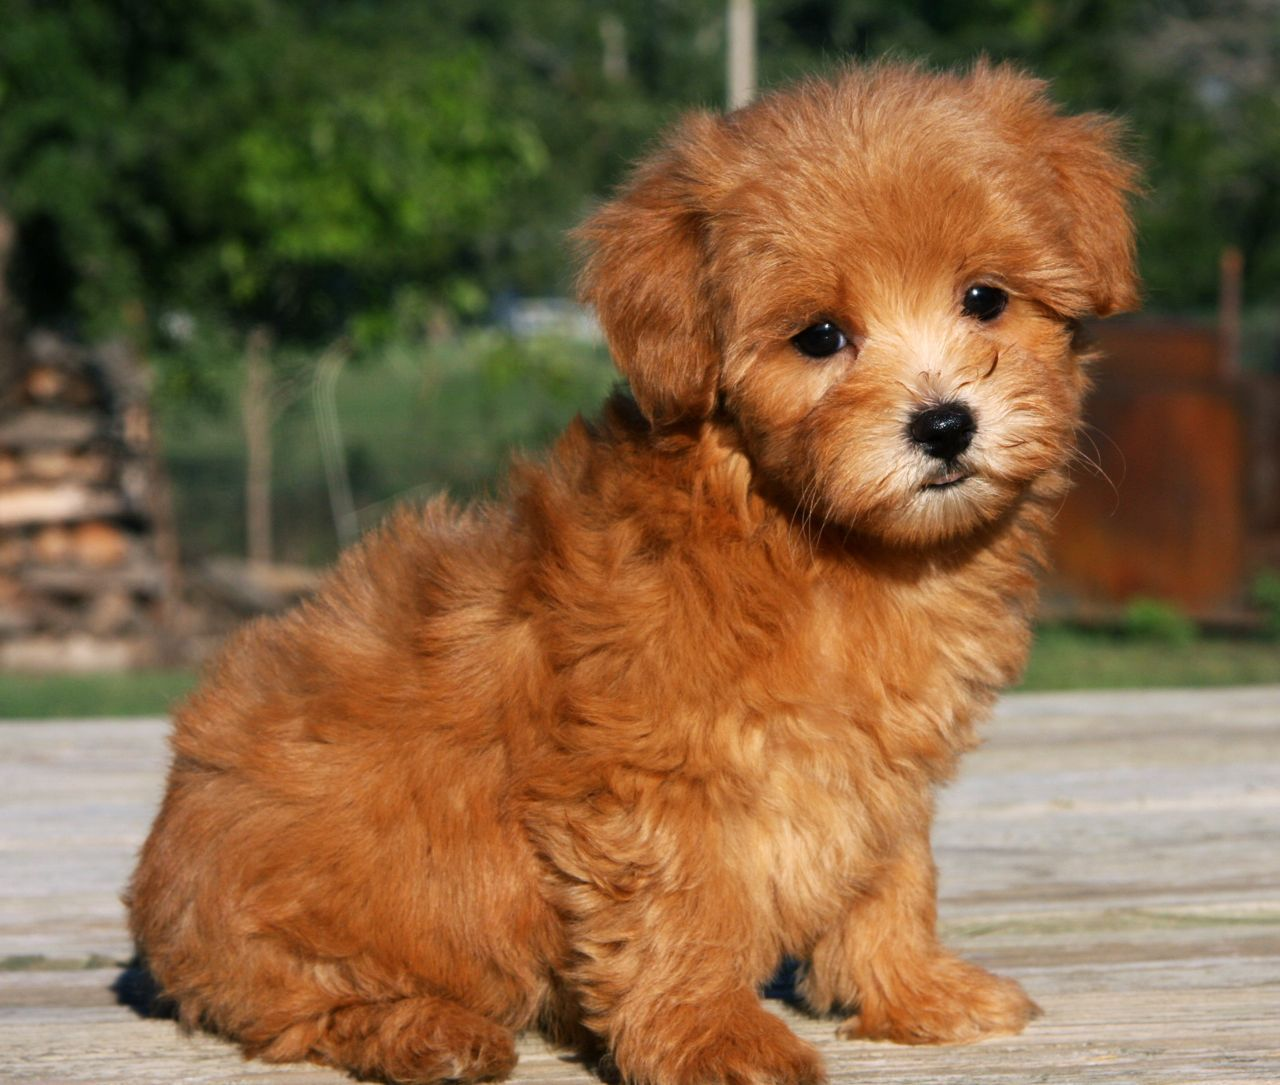 Maltipoo Puppies Thepuppymatchmaker My Little Baby Angel Face Named Penny Would Love It